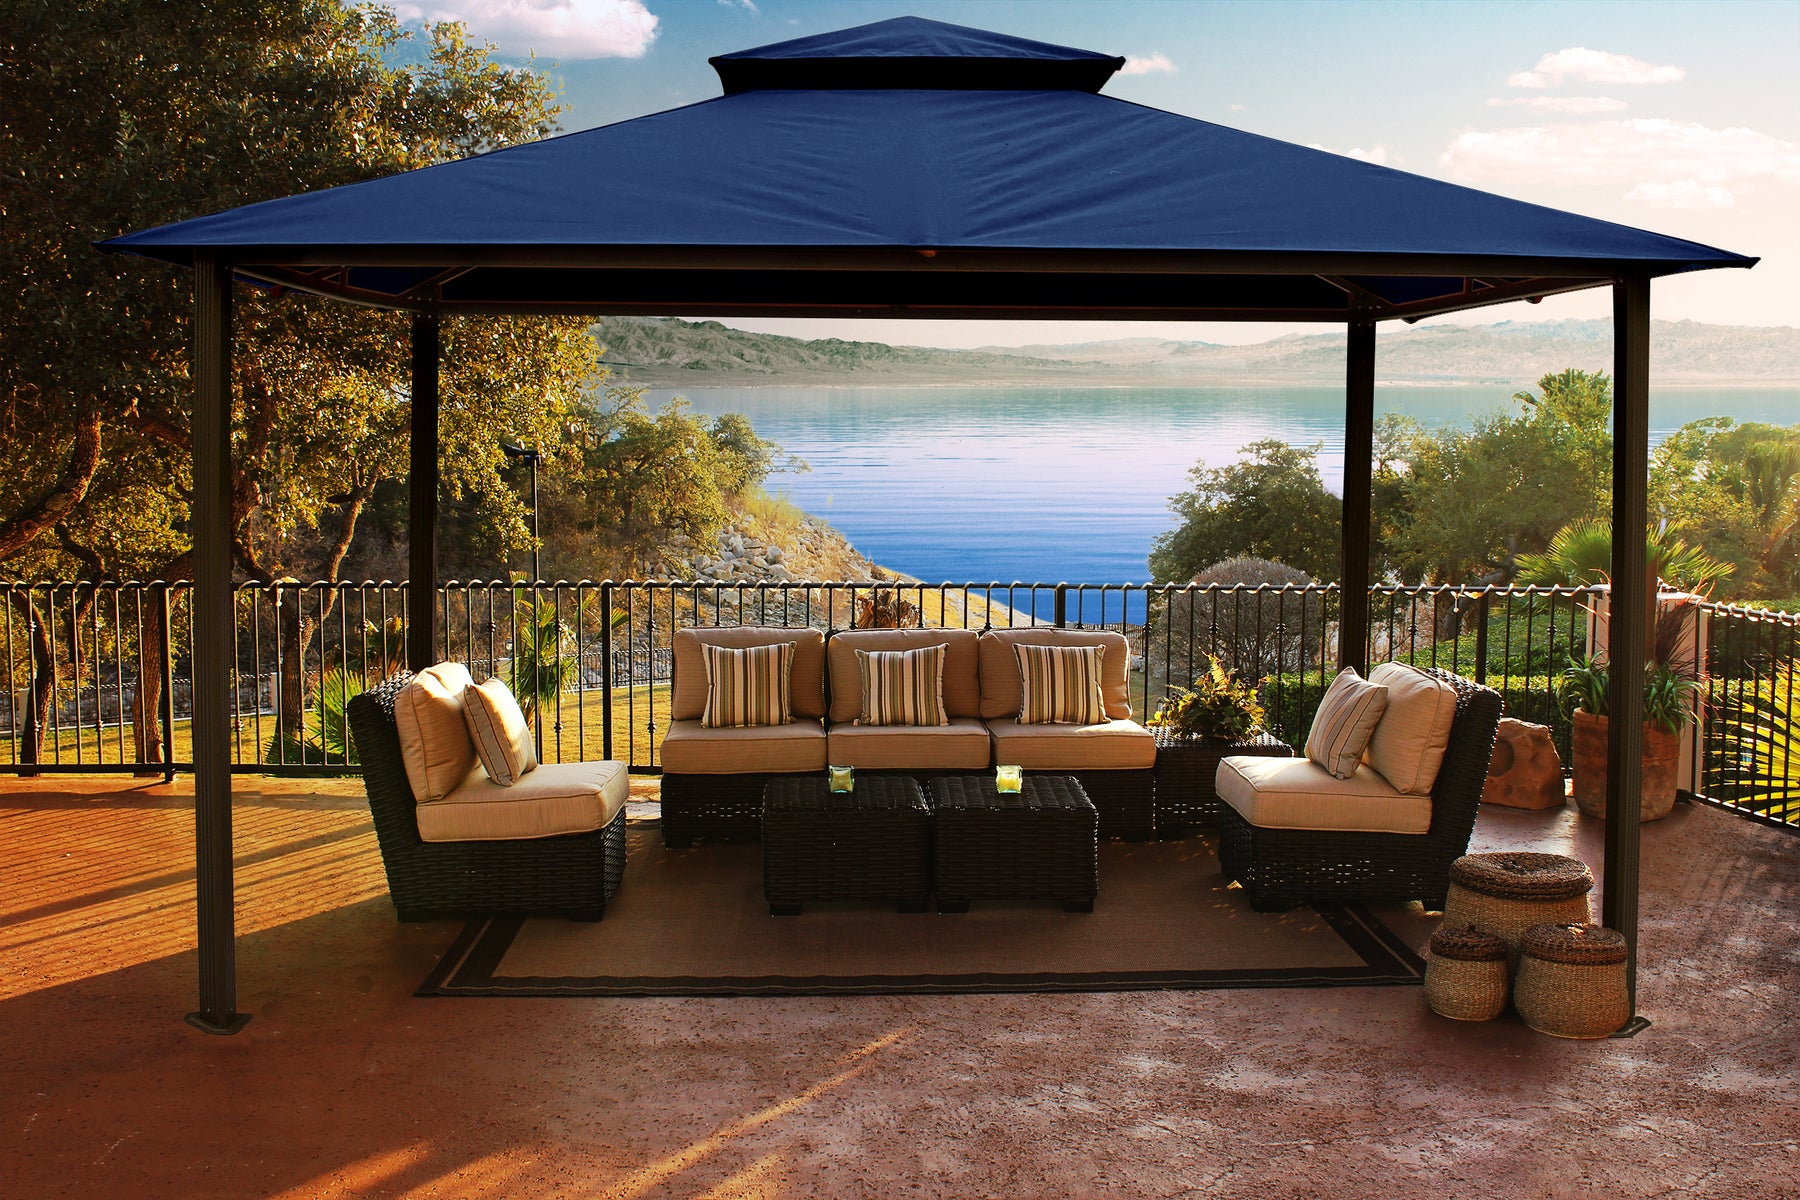 Paragon Outdoor™ Kingsbury Gazebo with Navy Top, Size - 11' x 14':Tuff Nest